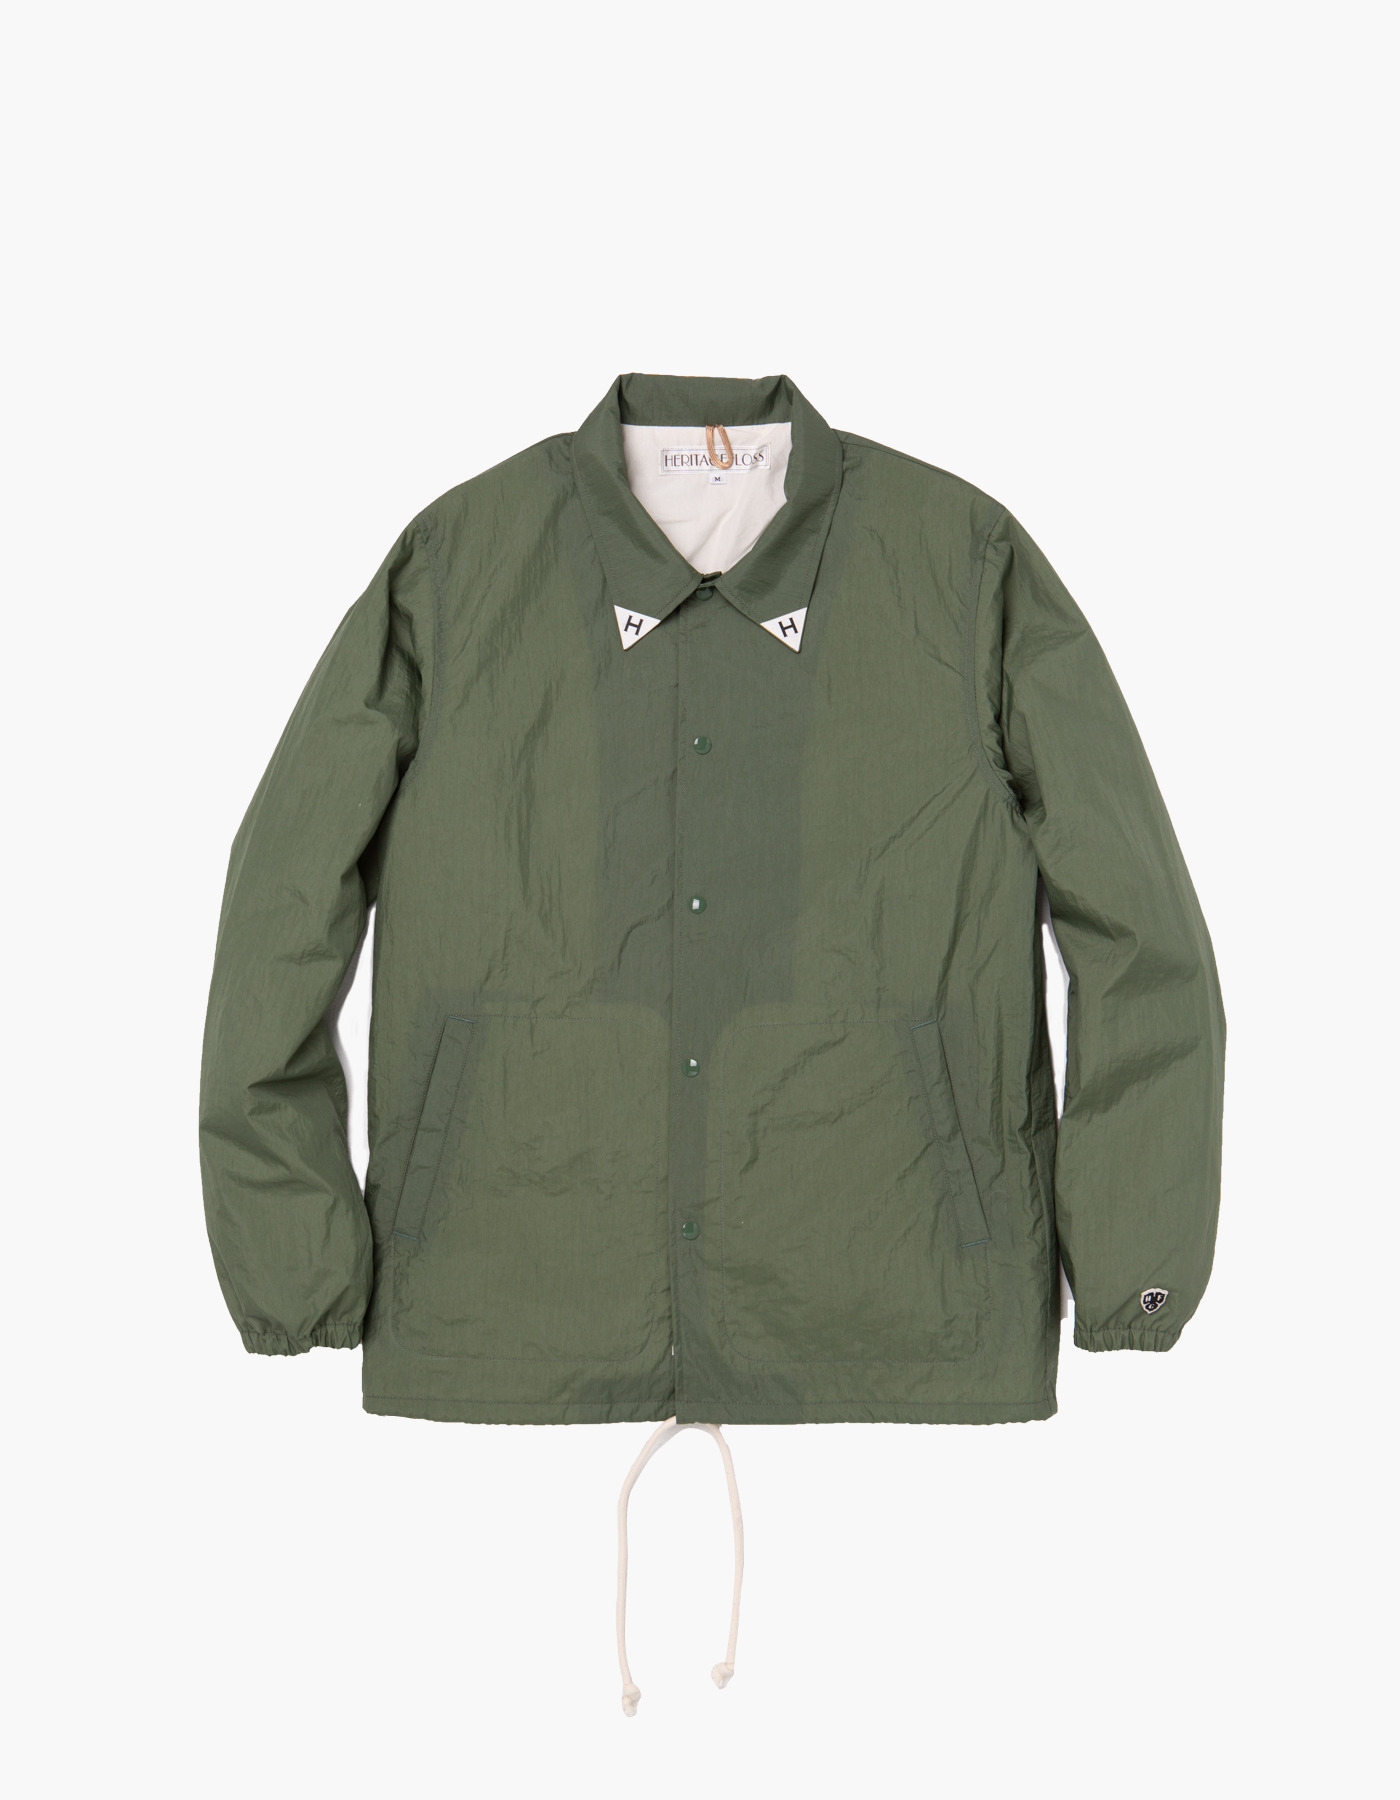 YACHT CLUB COACH JACKET / OLIVE